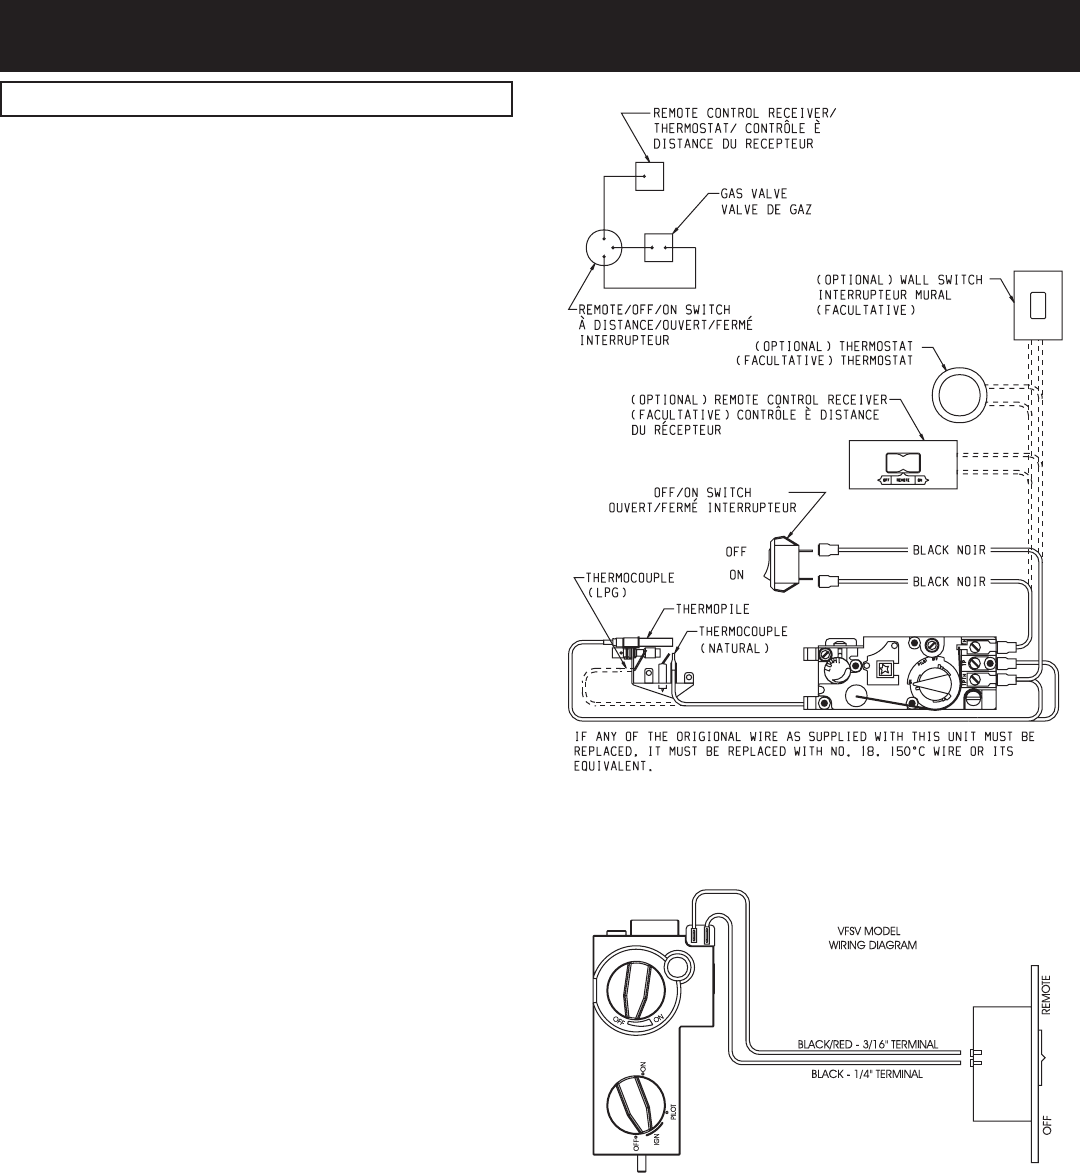 Page 18 Of Empire Comfort Systems Electric Heater Vfsr 16 3 Th Tp Gas Valve Millivolt Wiring Diagram 18954 0 0705